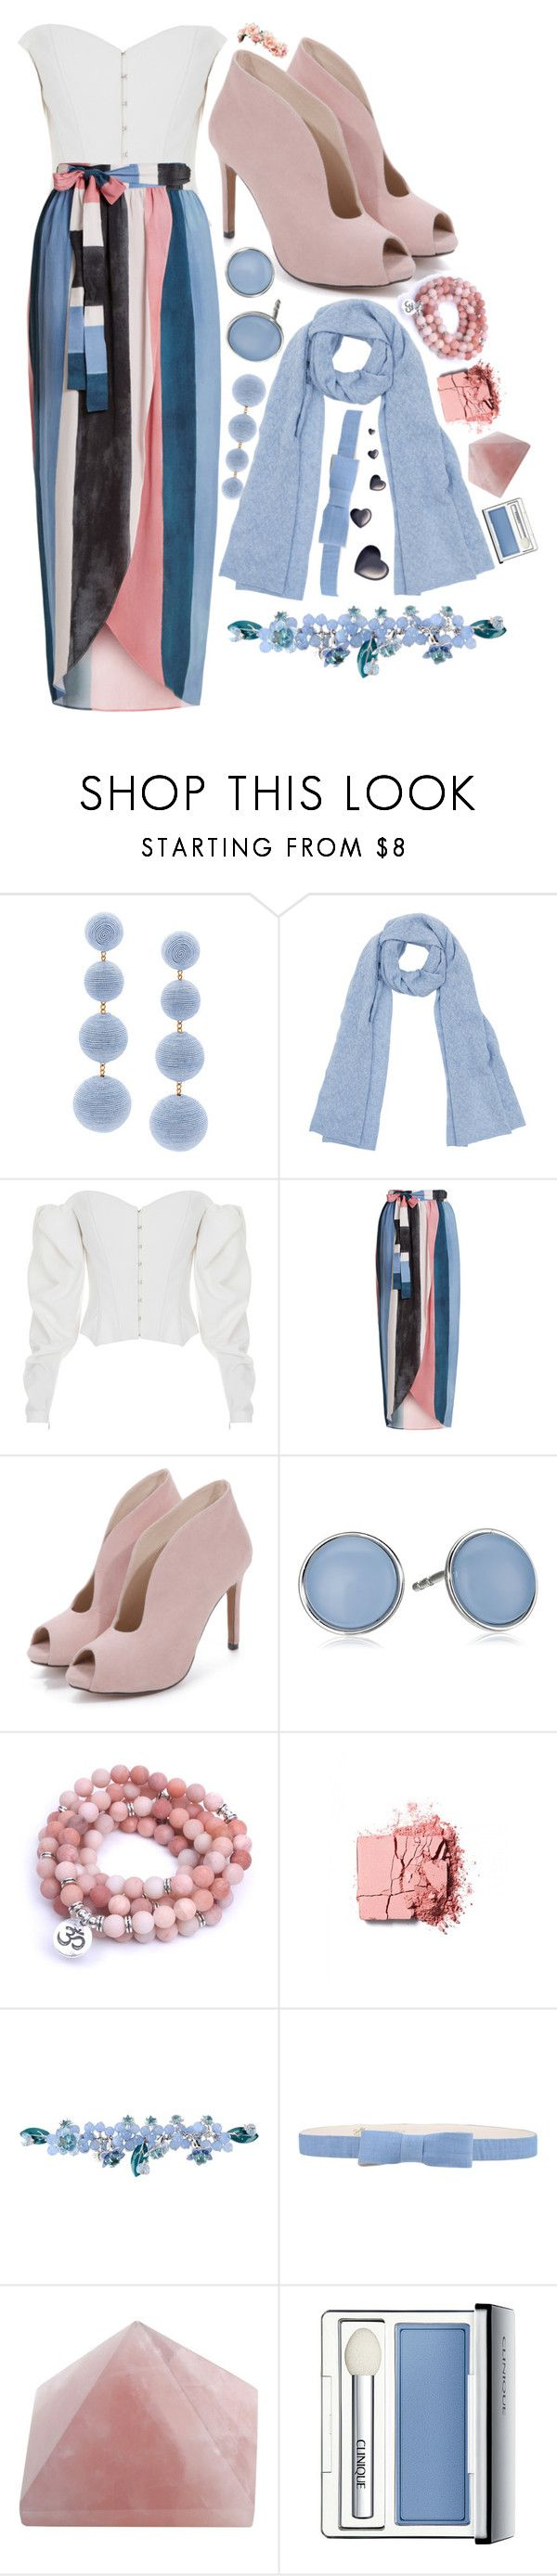 """""""Water"""" by aine-says-hi ❤ liked on Polyvore featuring Rebecca de Ravenel, Kinross, ElenaReva, Mara Hoffman, Skagen, Sretsis, See by Chloé and Clinique"""